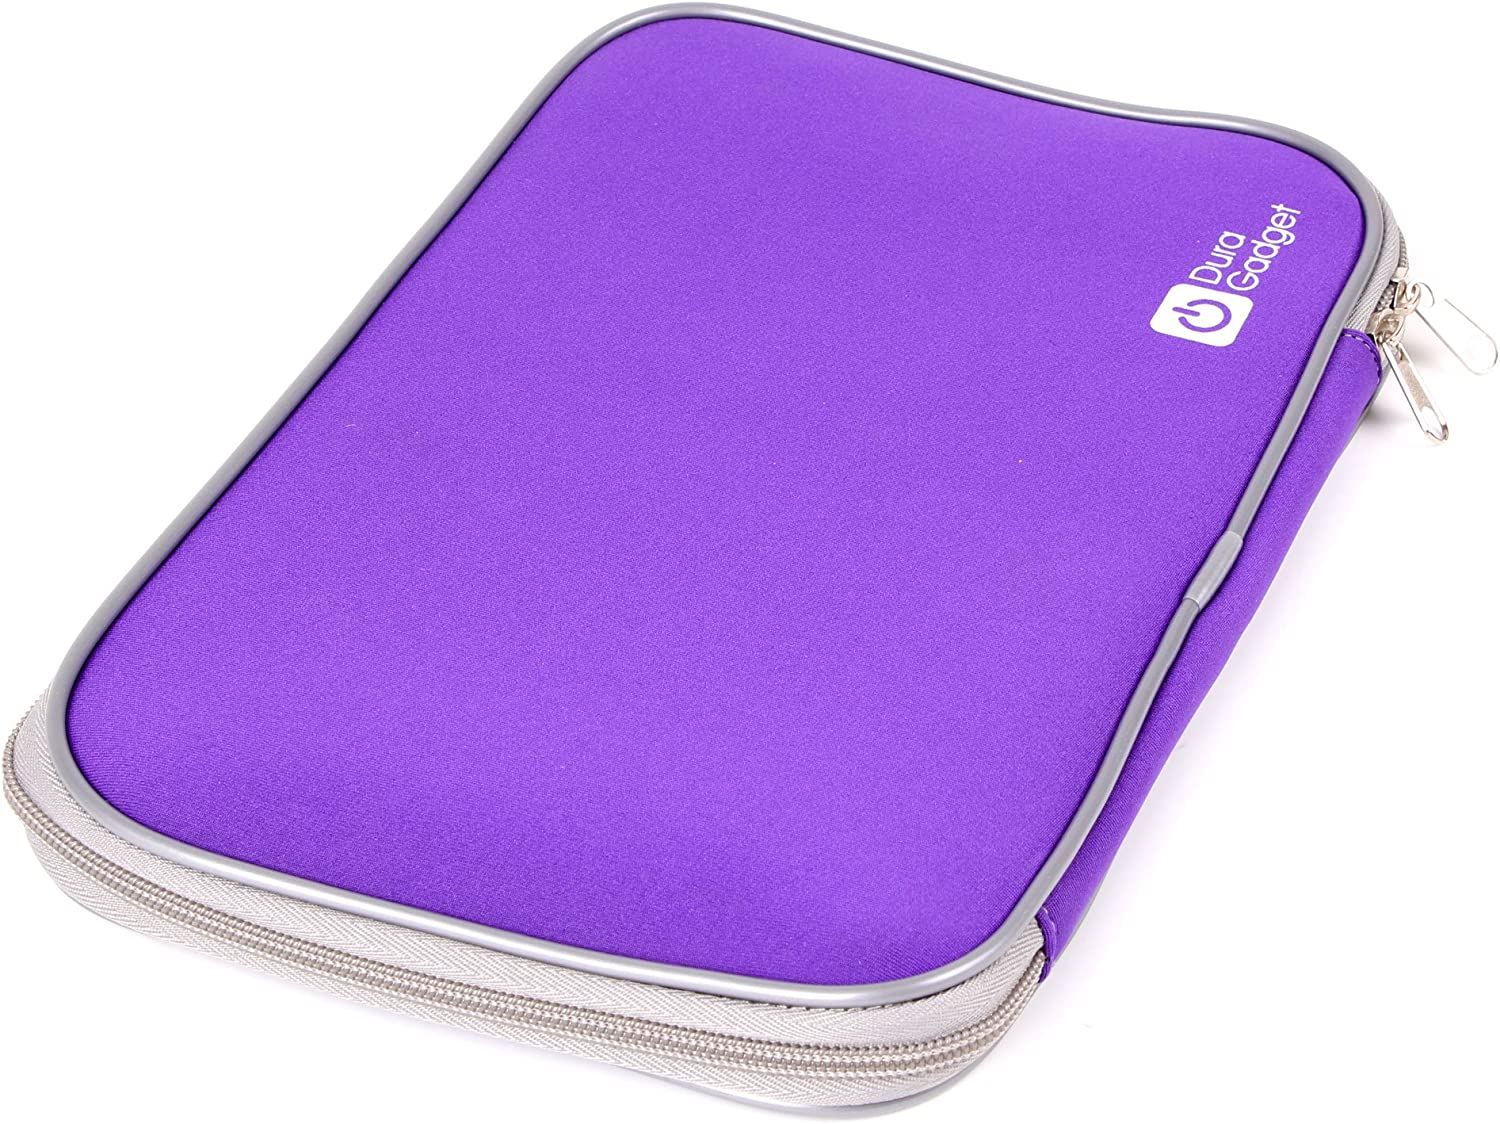 DURAGADGET Large Purple Shock Absorbent Neoprene Laptop Sleeve with Dual Zips for New Acer Aspire V Nitro VN7-591G-71W9